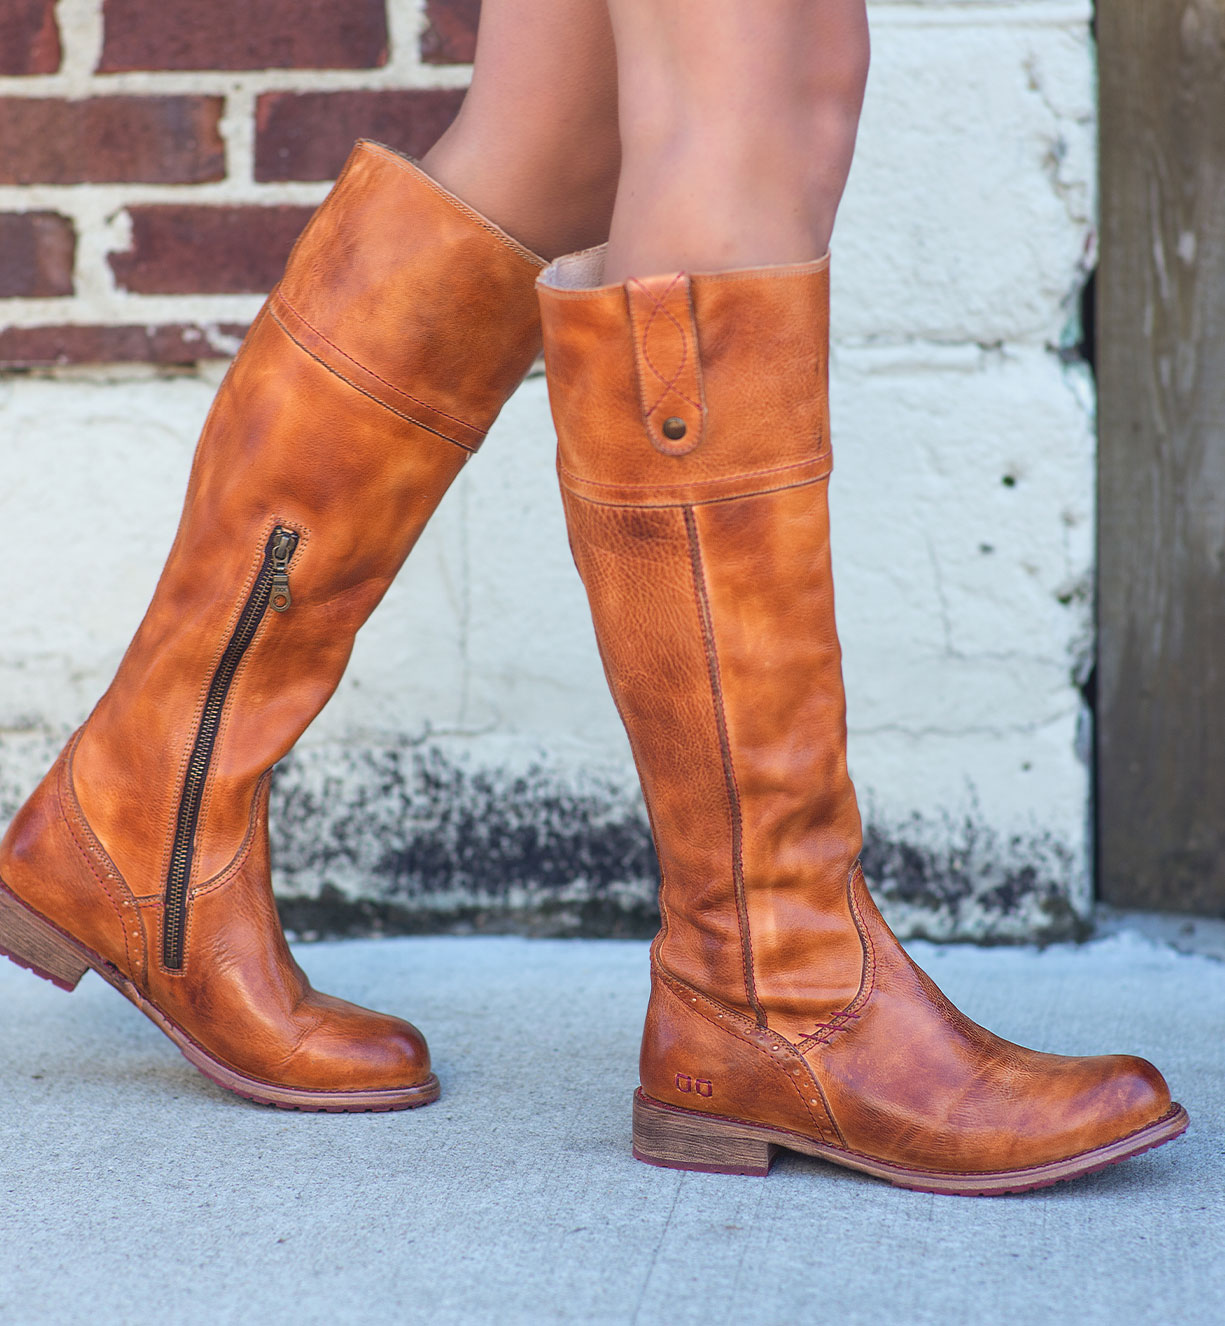 fashionable leather tall boots for women fall 2021